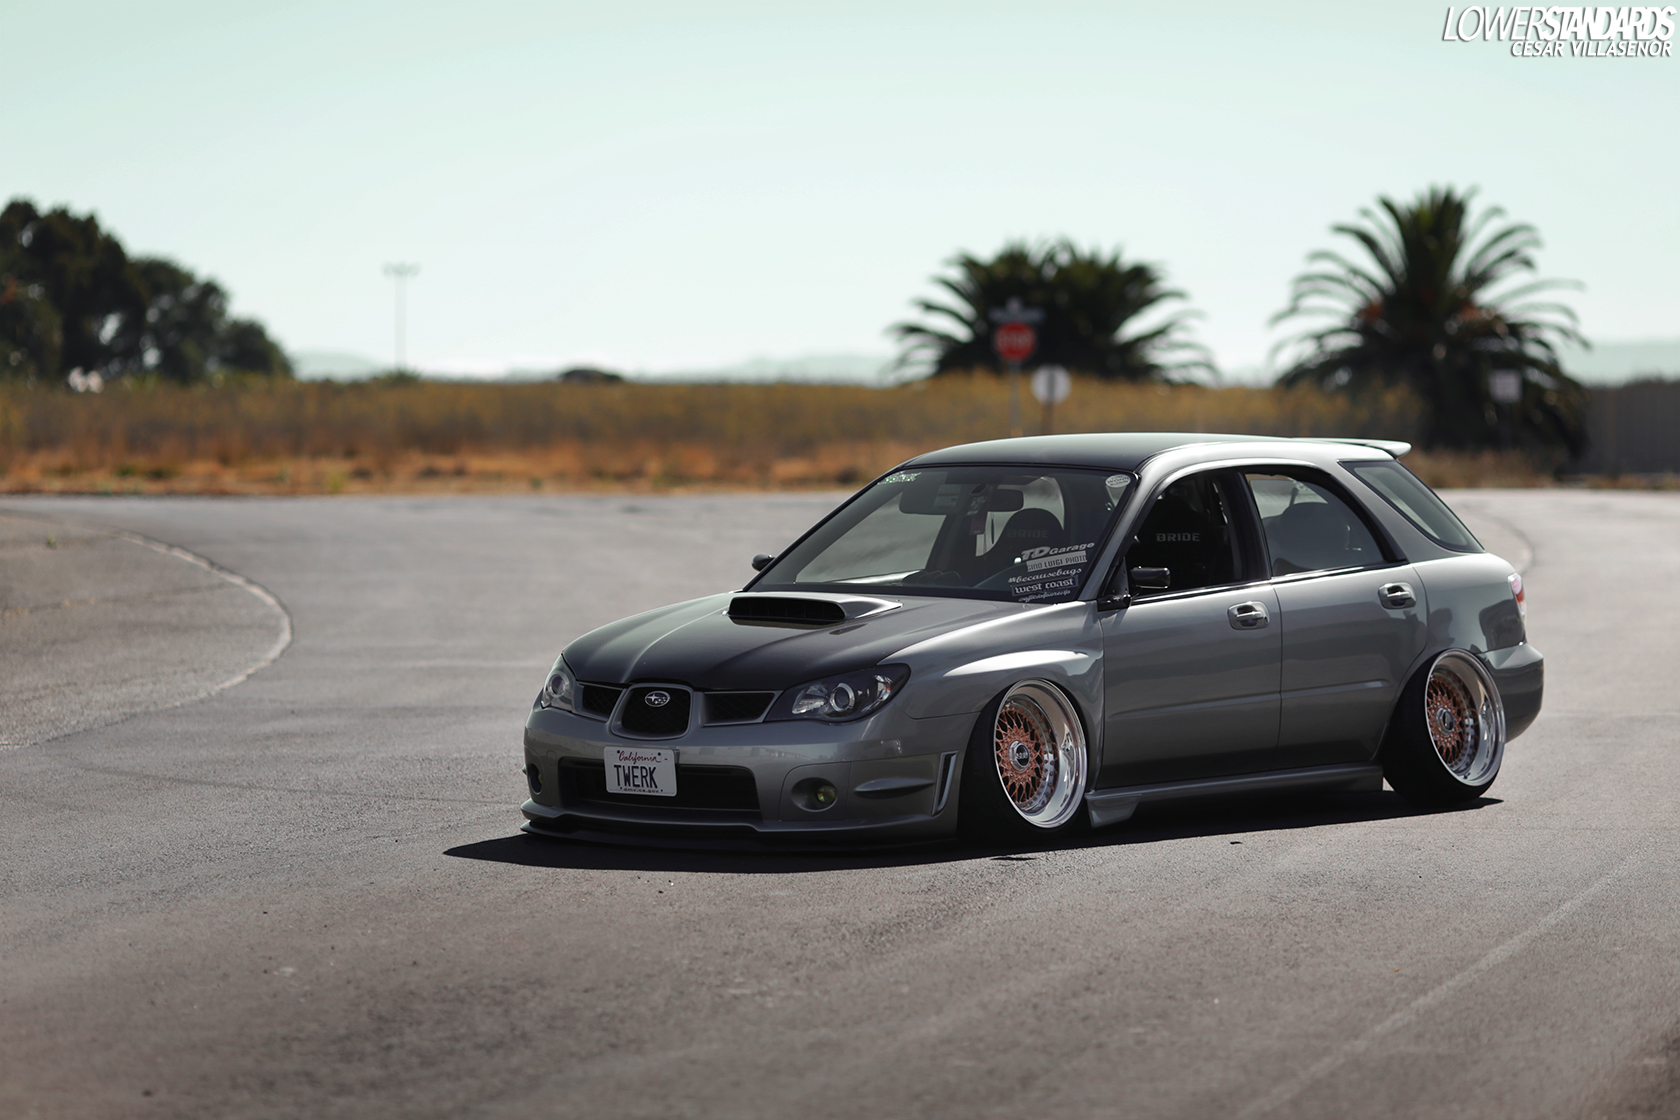 Purevip Ronald S Wrx Wagon Lower Standardslower Standards